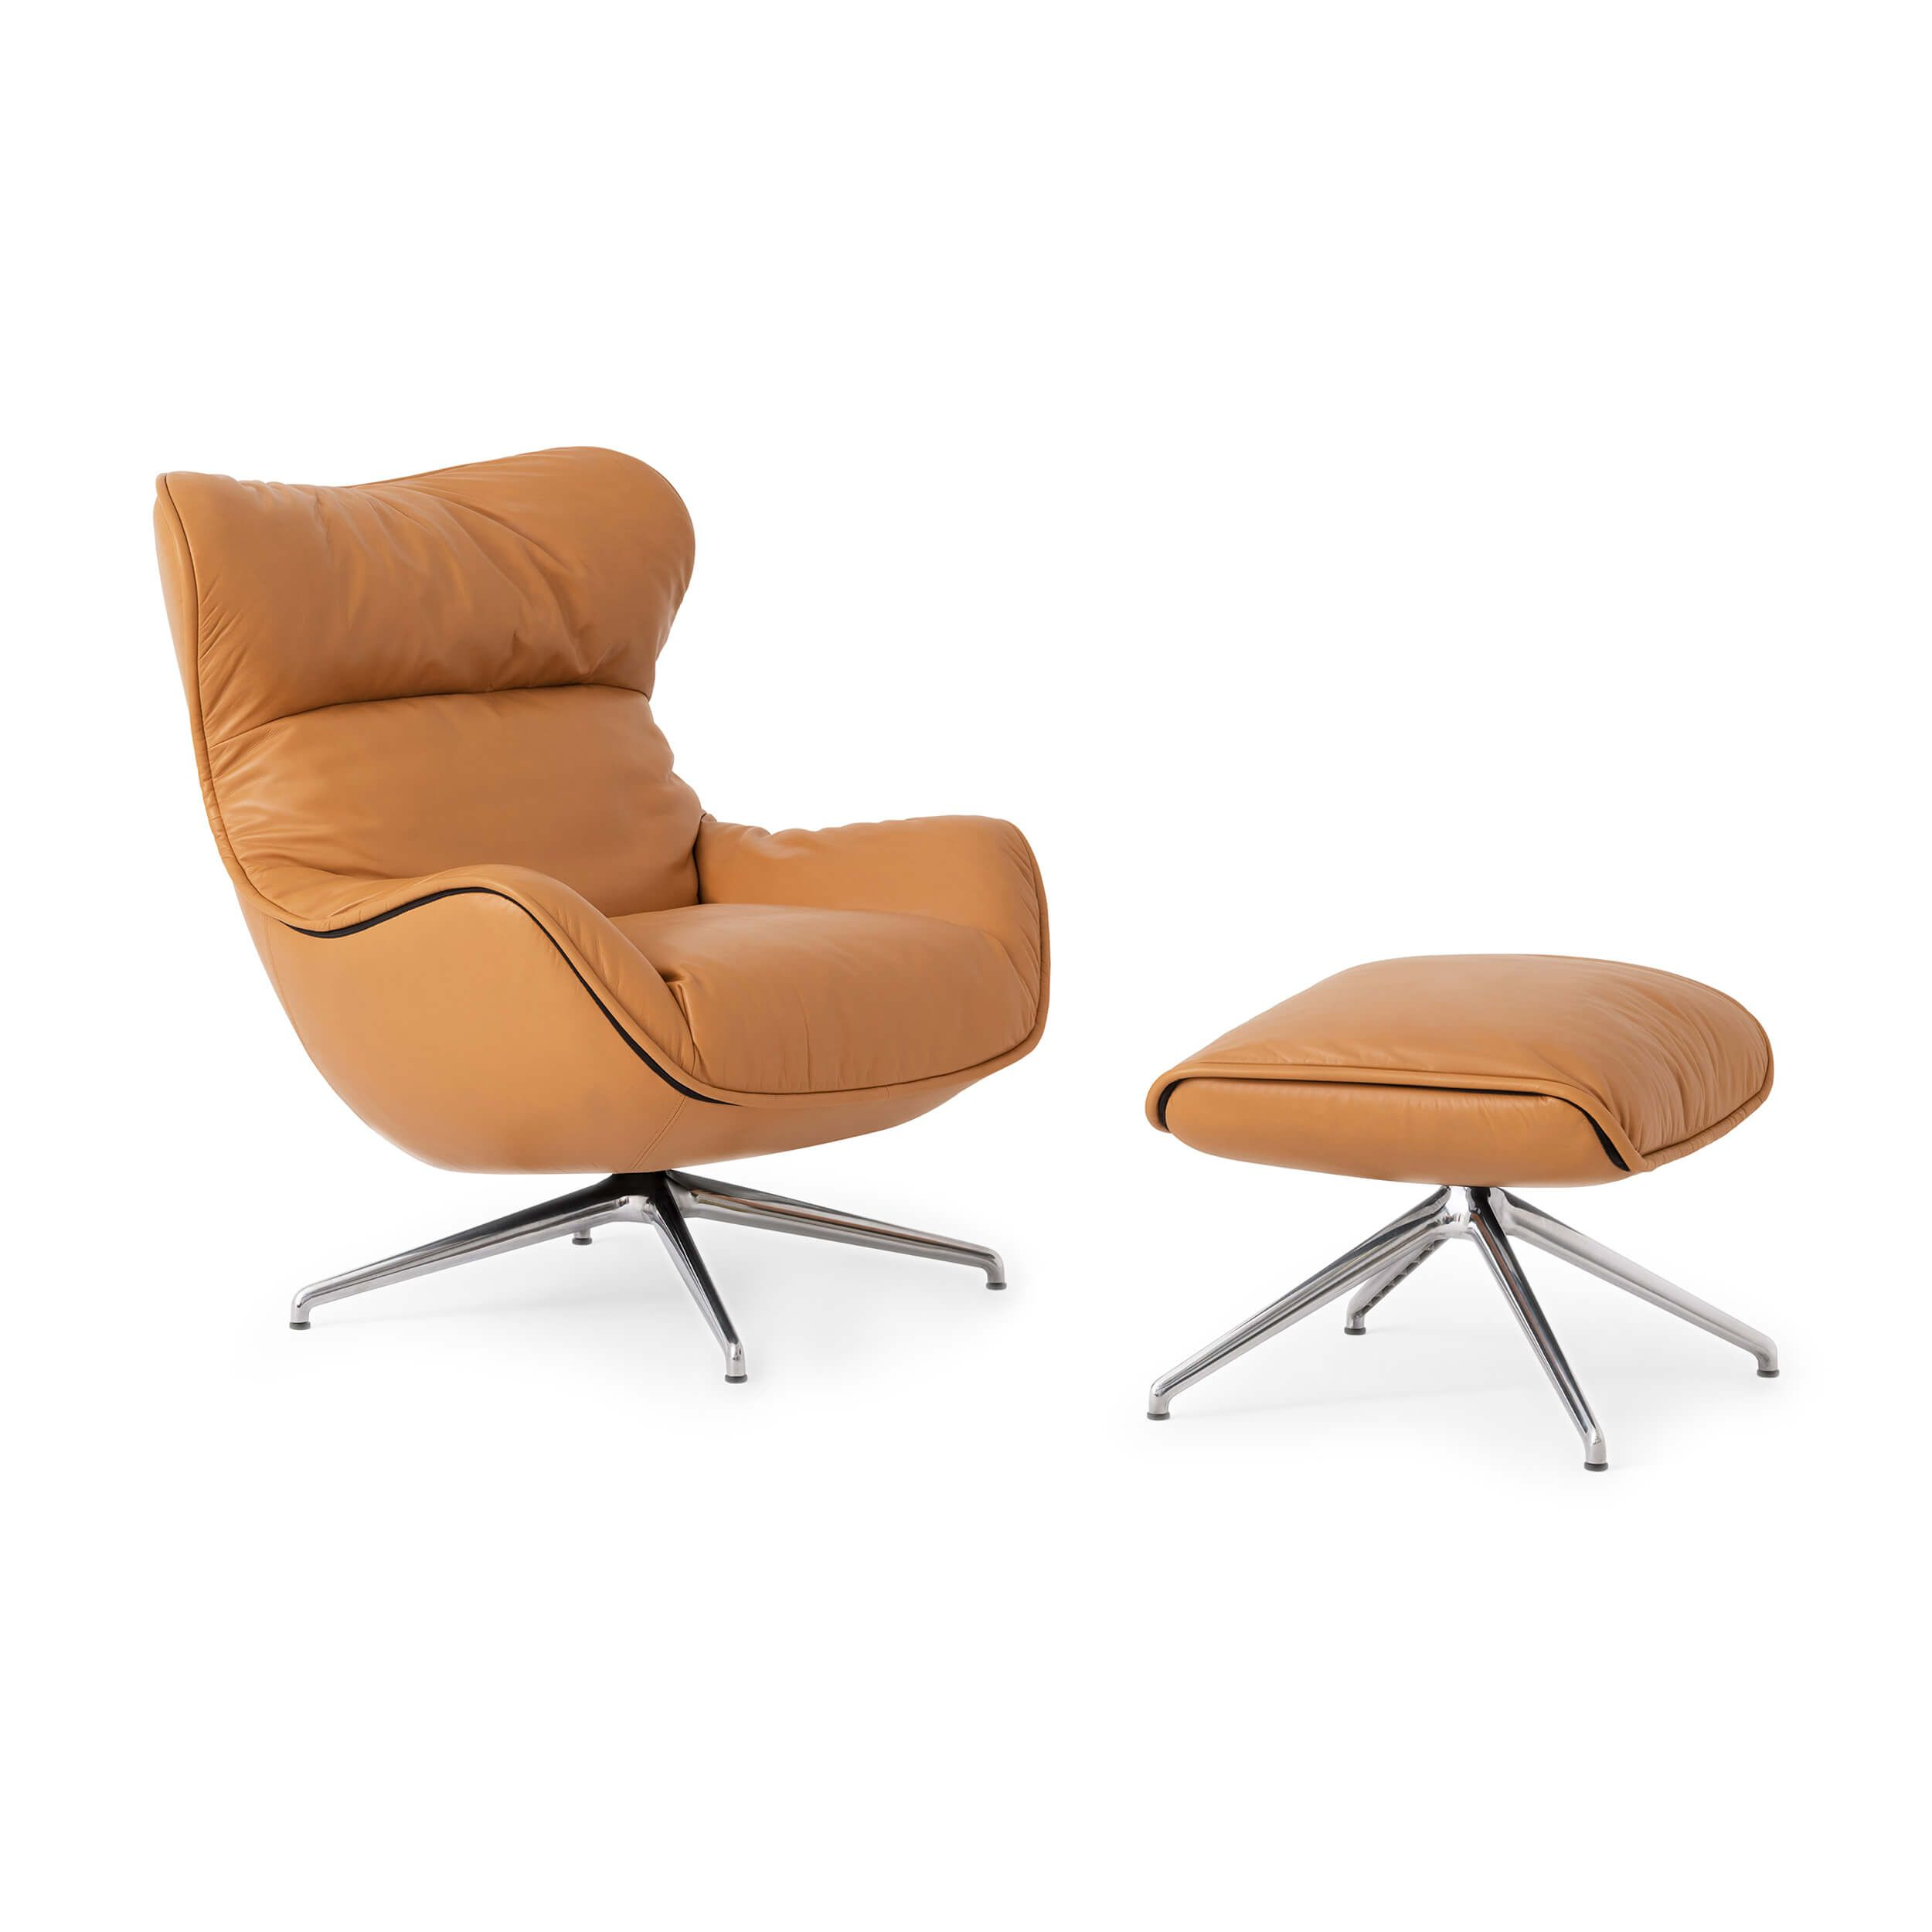 An Inviting Chair And Ottoman Combo You Won T Be Able To Resist The Canadian Made Mid Century Lounge Chairs Modern Furniture Living Room Leather Lounge Chair